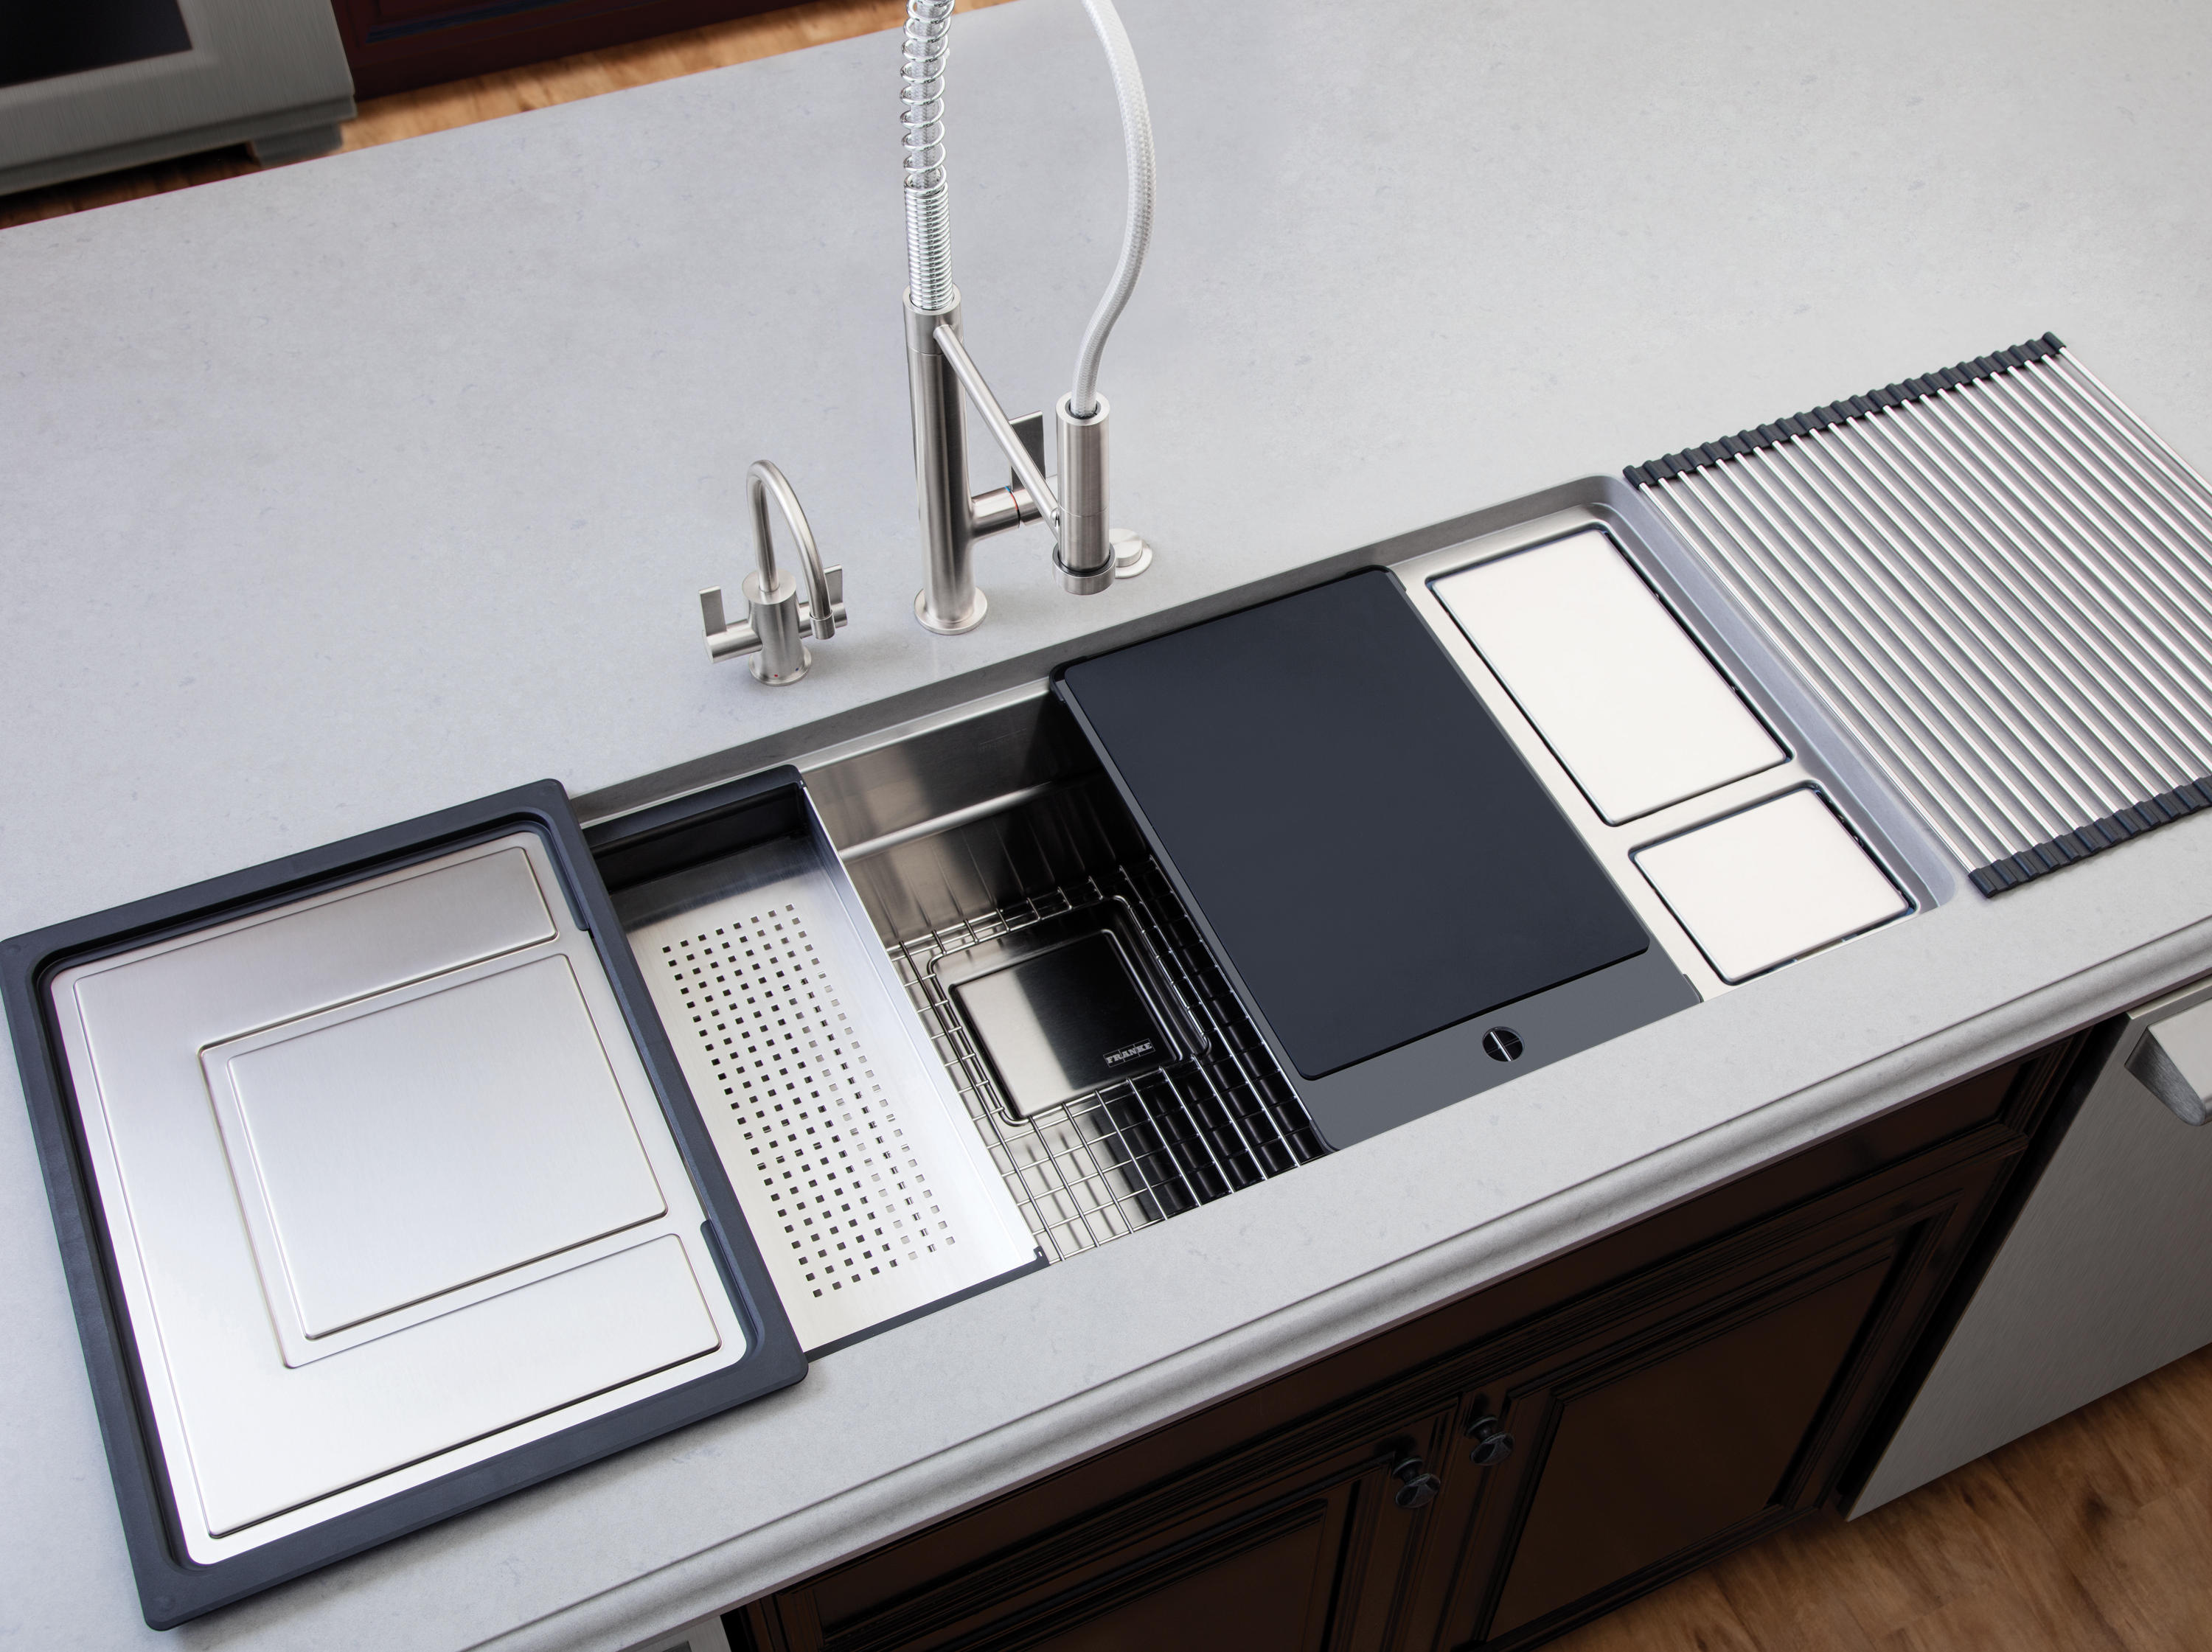 ACCESSORY SINKS DRAIN TRAYS - Kitchen organization from Franke ...